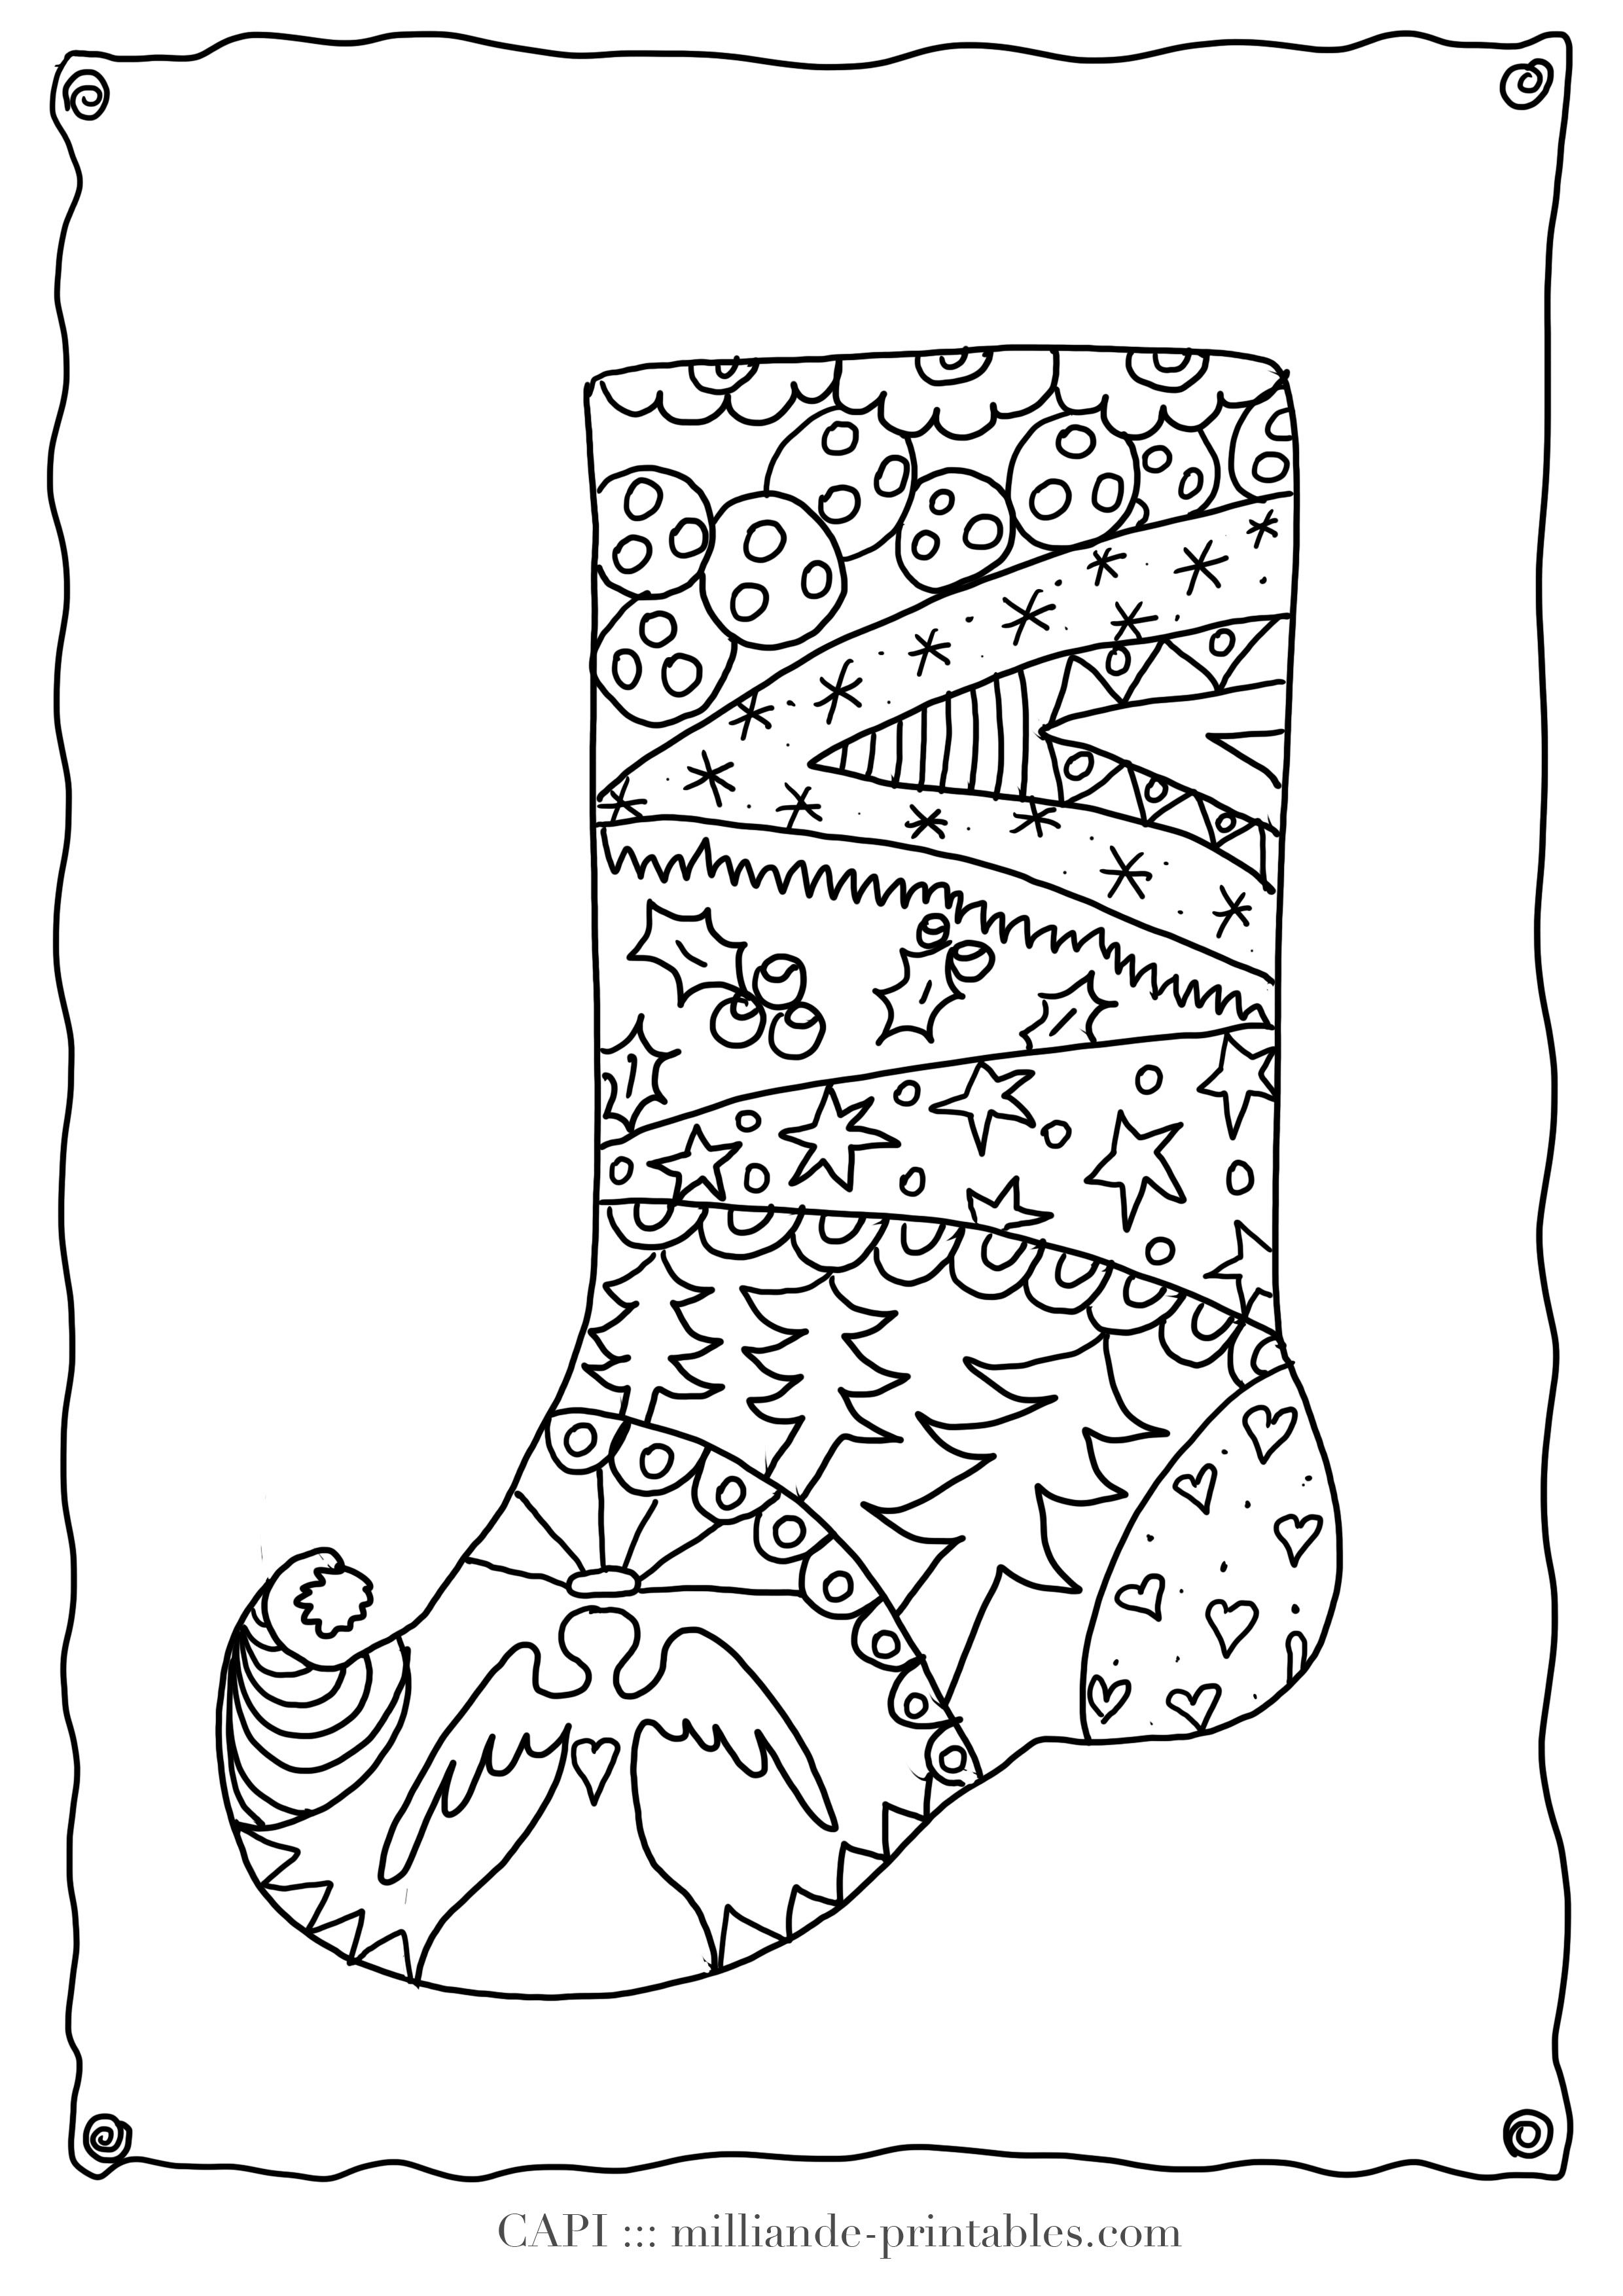 Christmas Coloring Pages For Adults Printable Free With Detailed Bing Images Design Pinterest